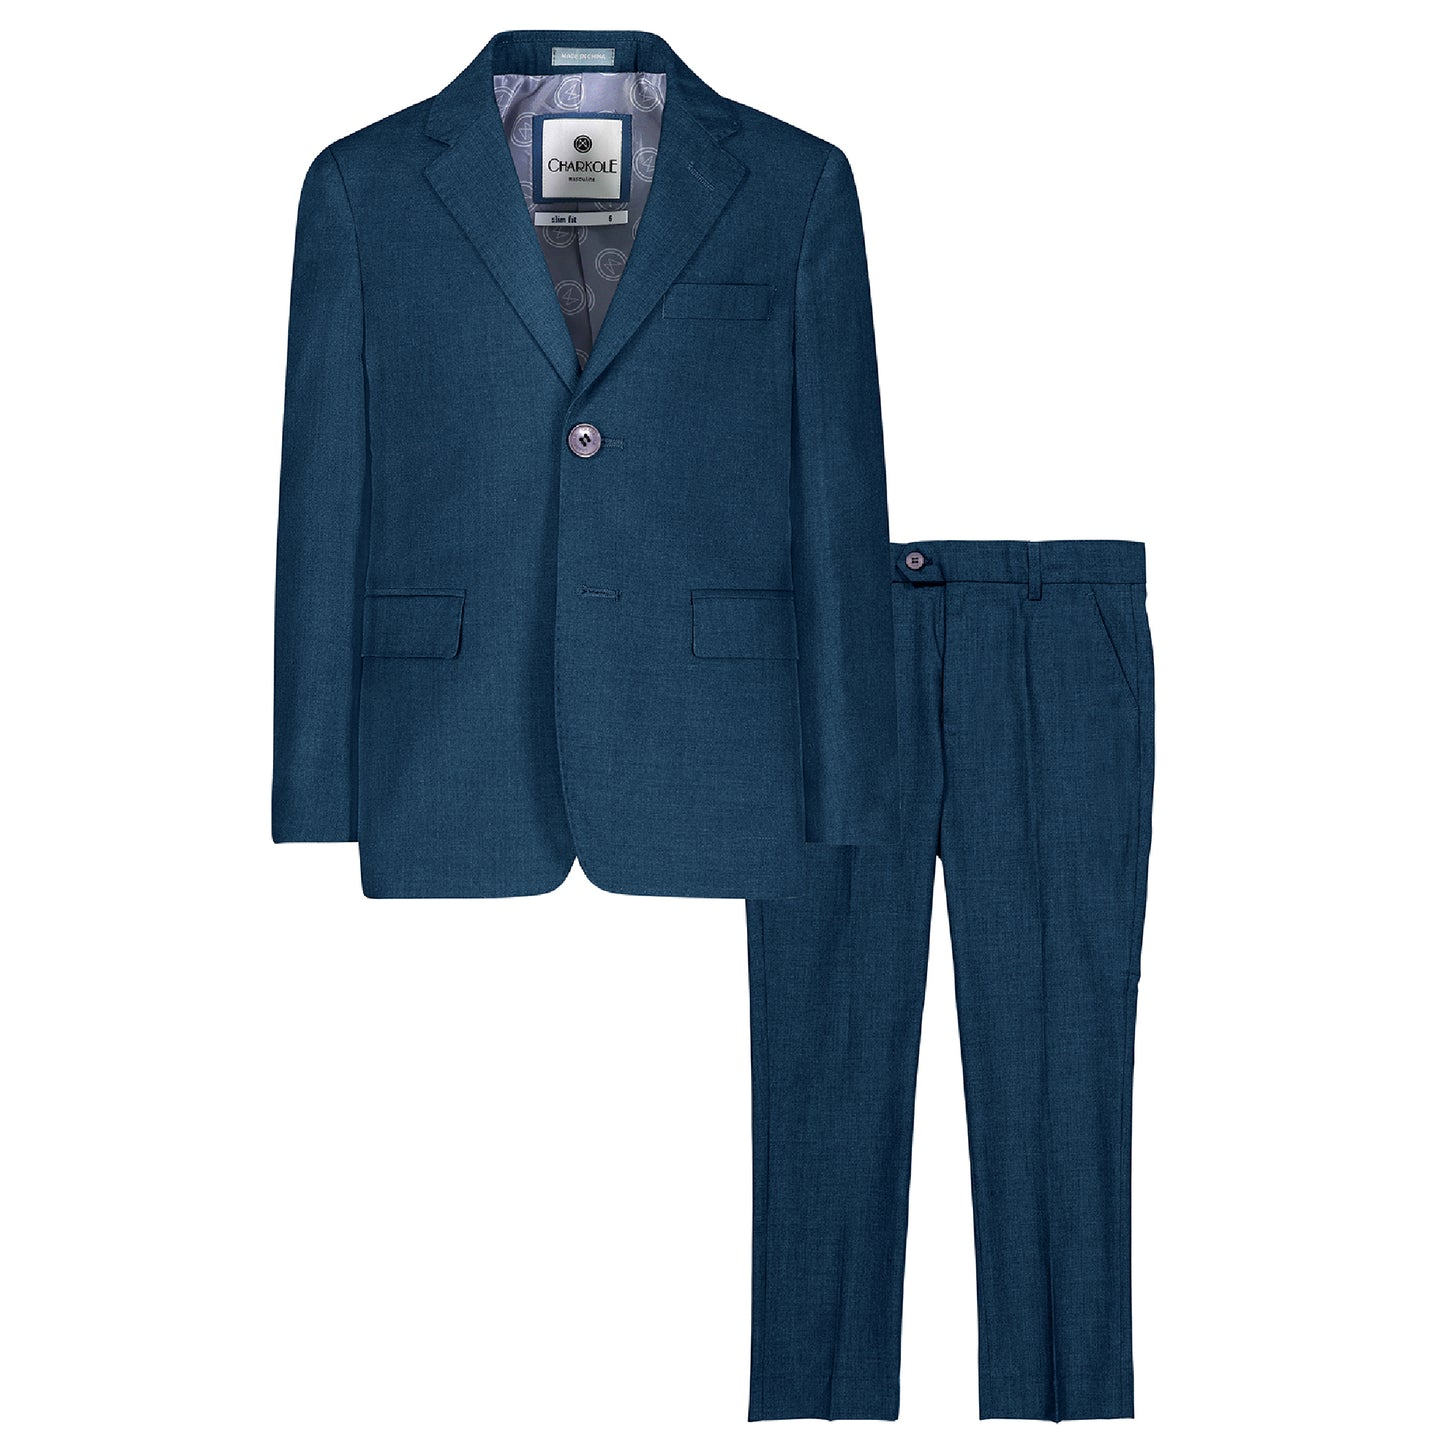 Teal Two Piece Suit